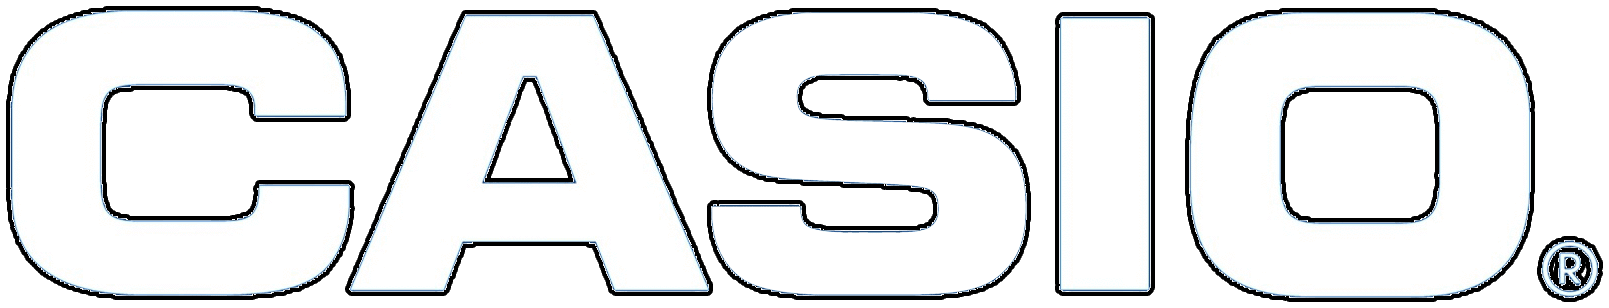 Casio Logo PNG Clipart.